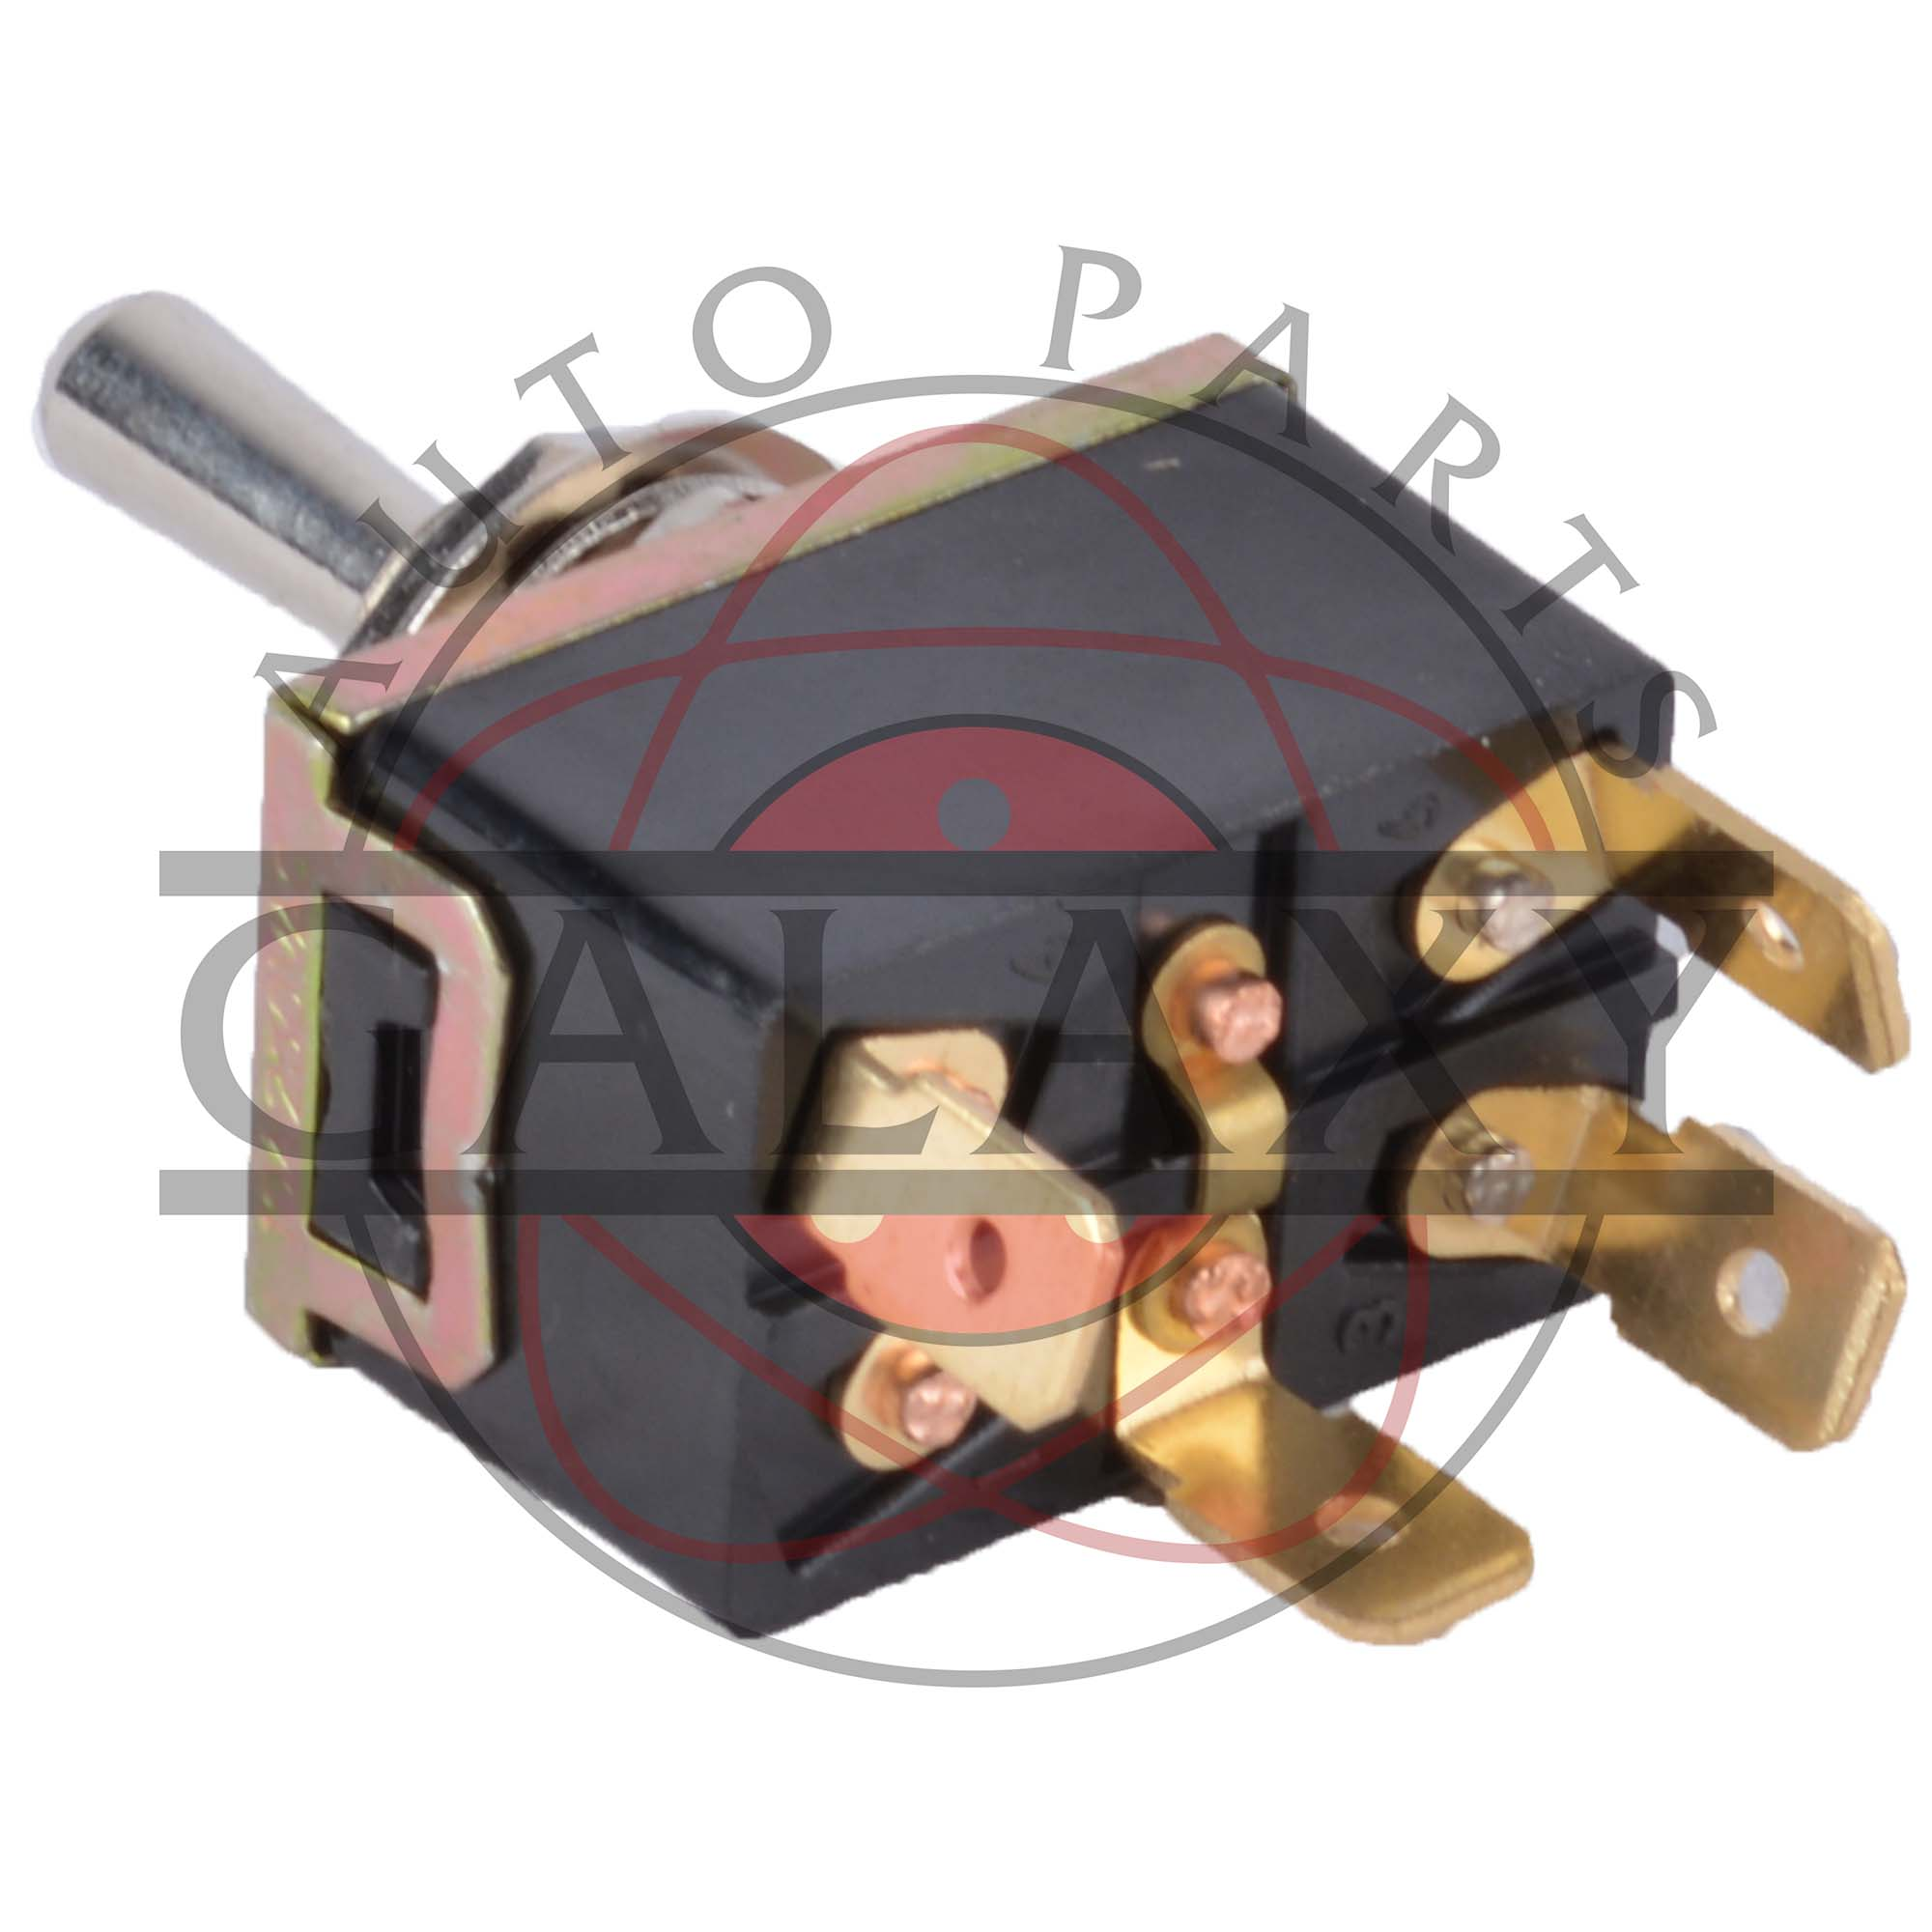 meyer plow pump energy transfer diagram for a torch snowplow lift switch e47 replaces part 21919 ebay